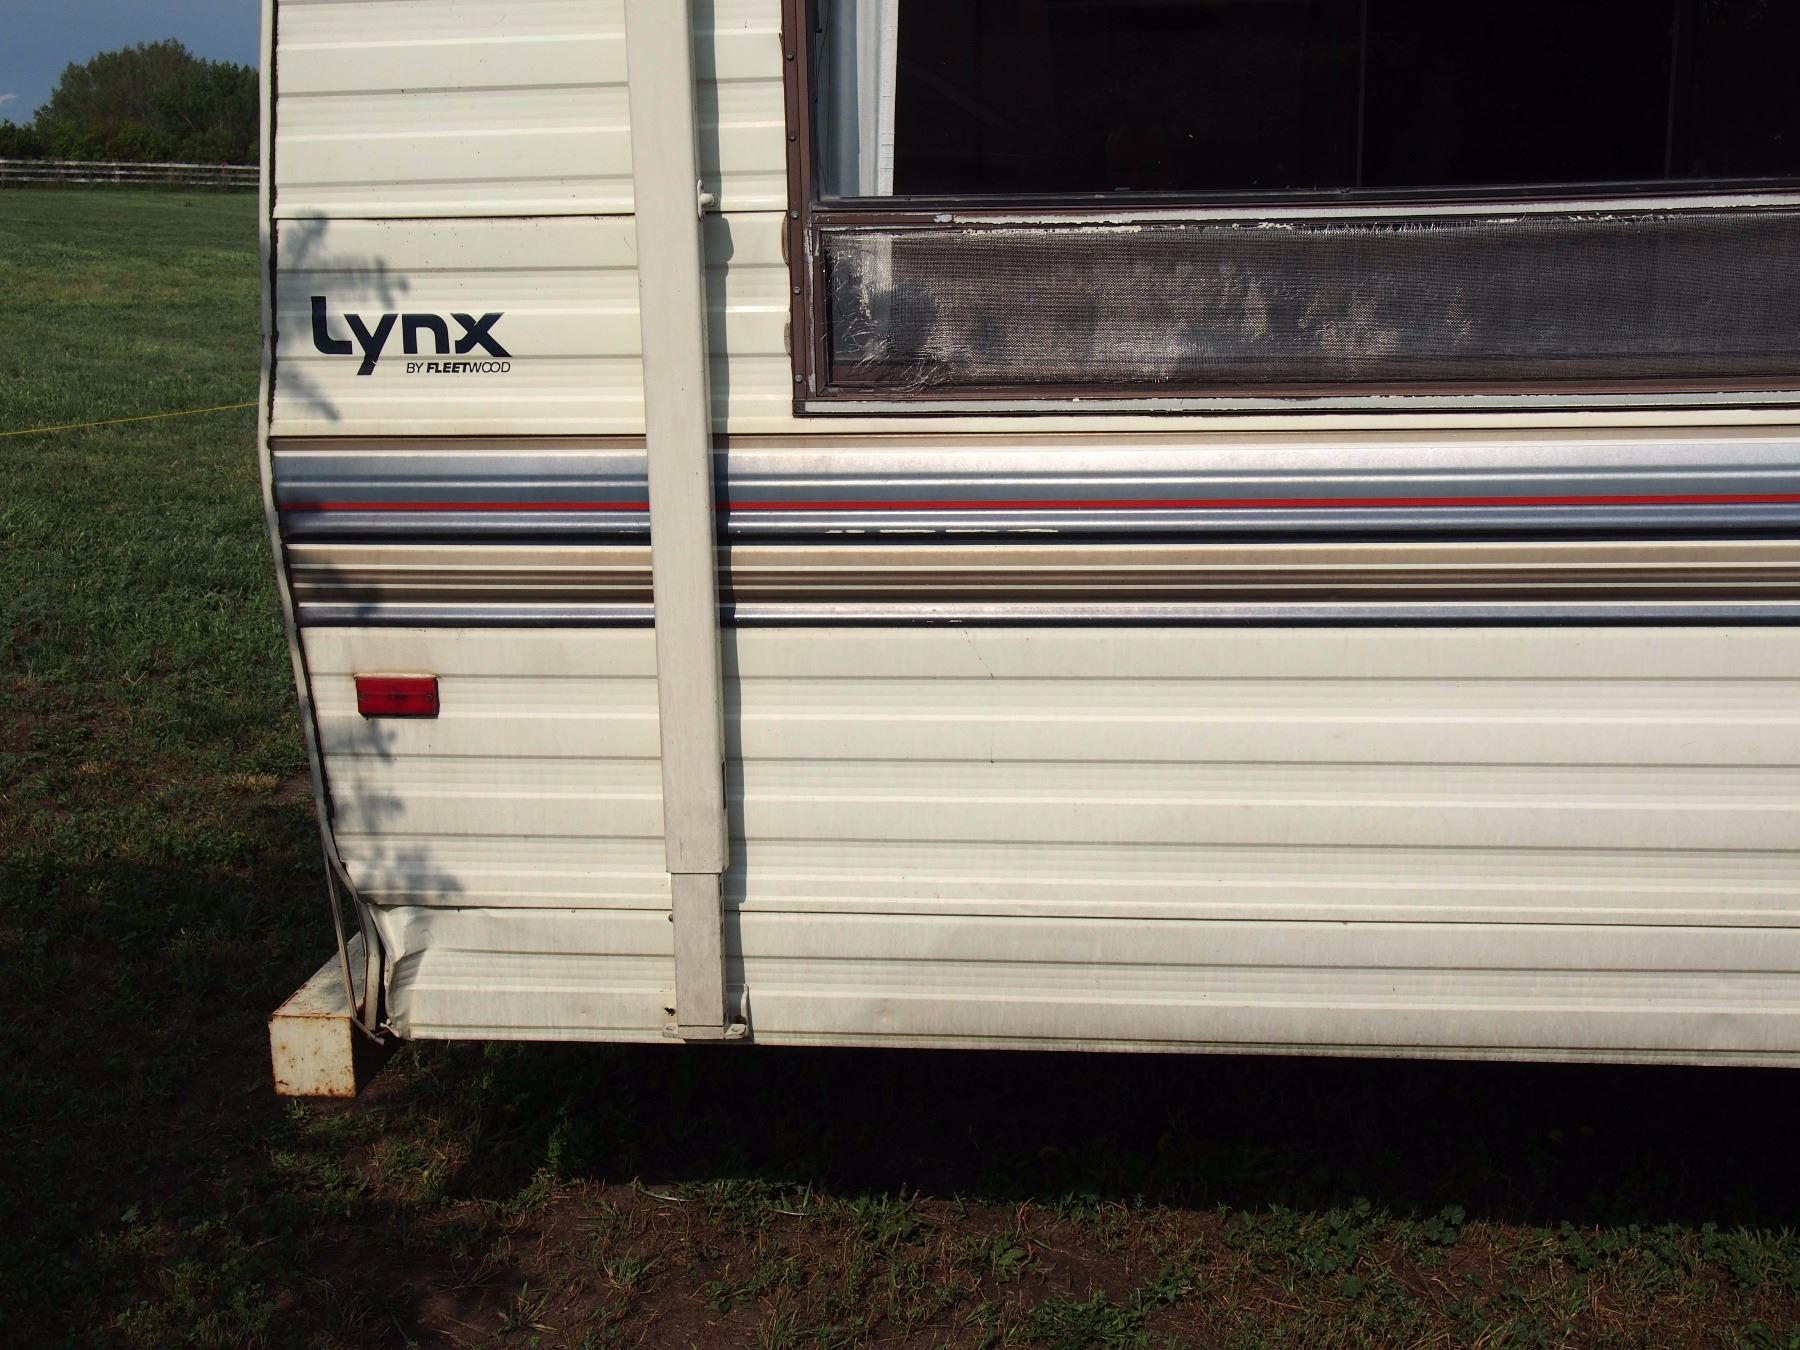 ... Image 11 : 1989 Lynx Fleetwood Prowler Trailer, 26', 5th Wheel  (2EC6N2624K6543792